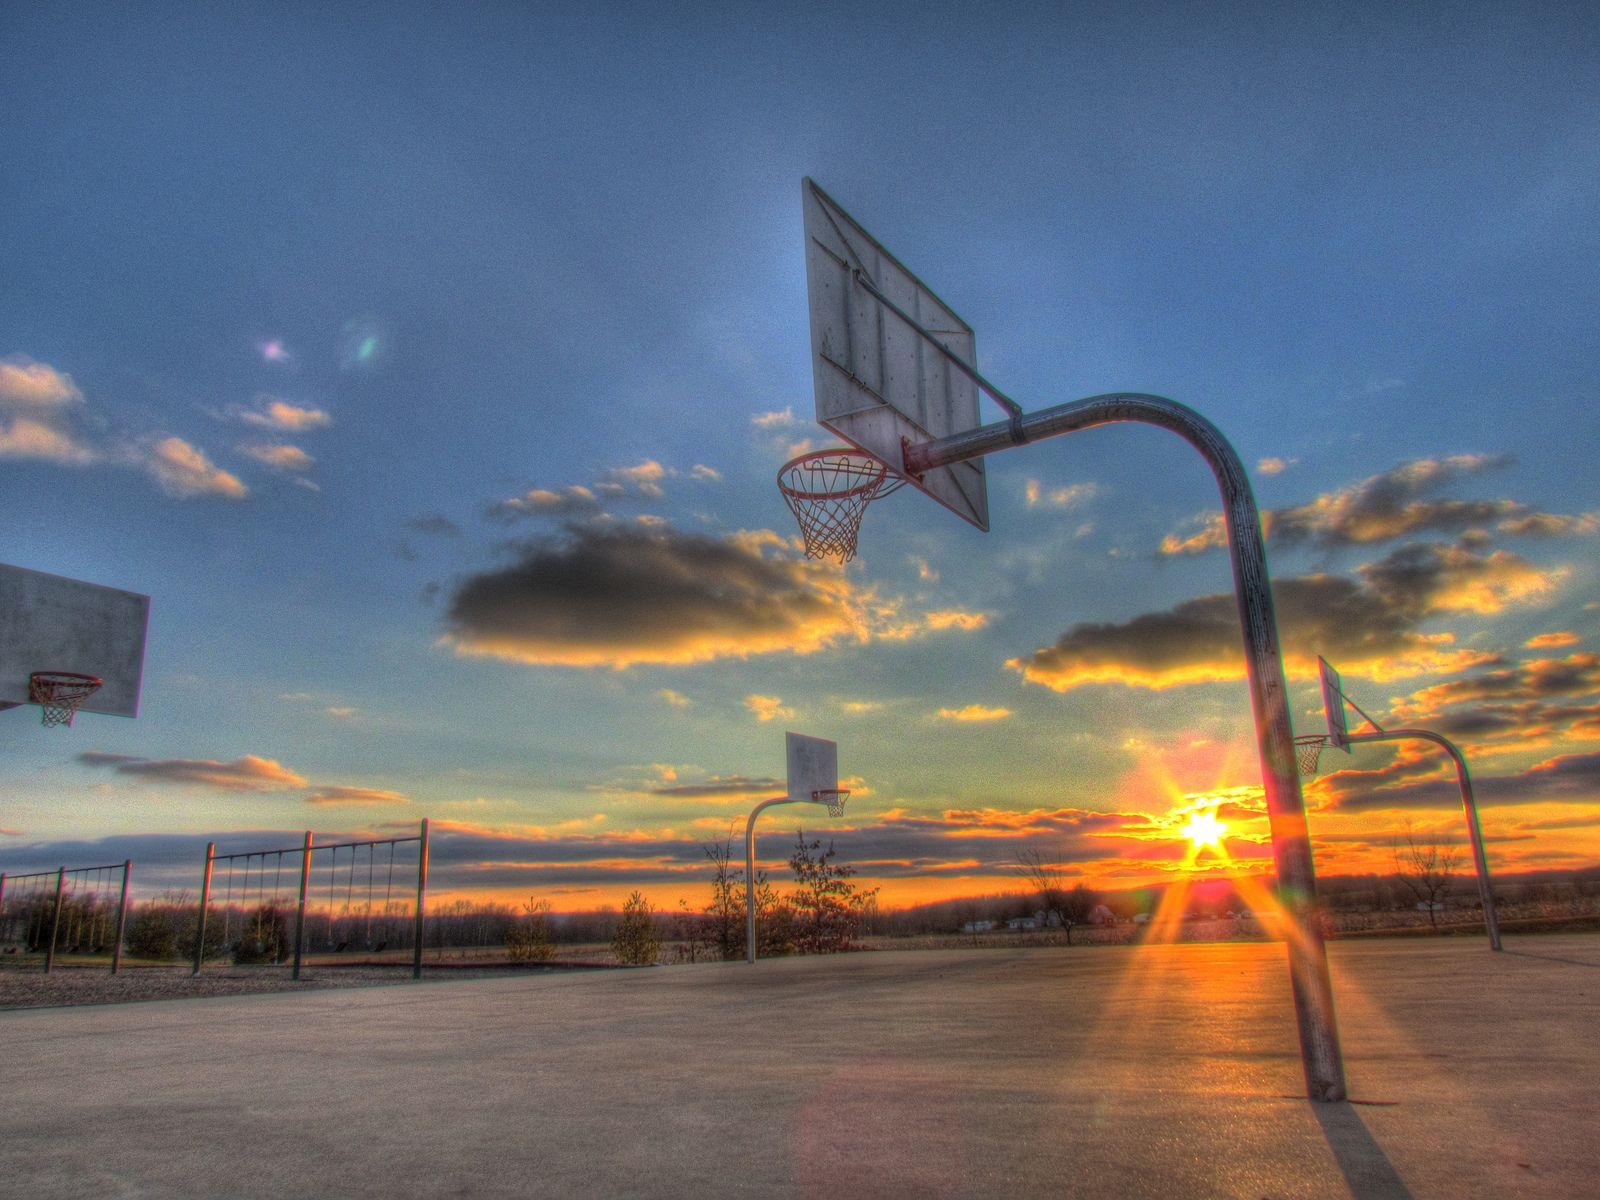 Hd Basketball Court Wallpaper For Iphone Kemecer Com Pool Basketball Outdoor Basketball Court Basketball Background